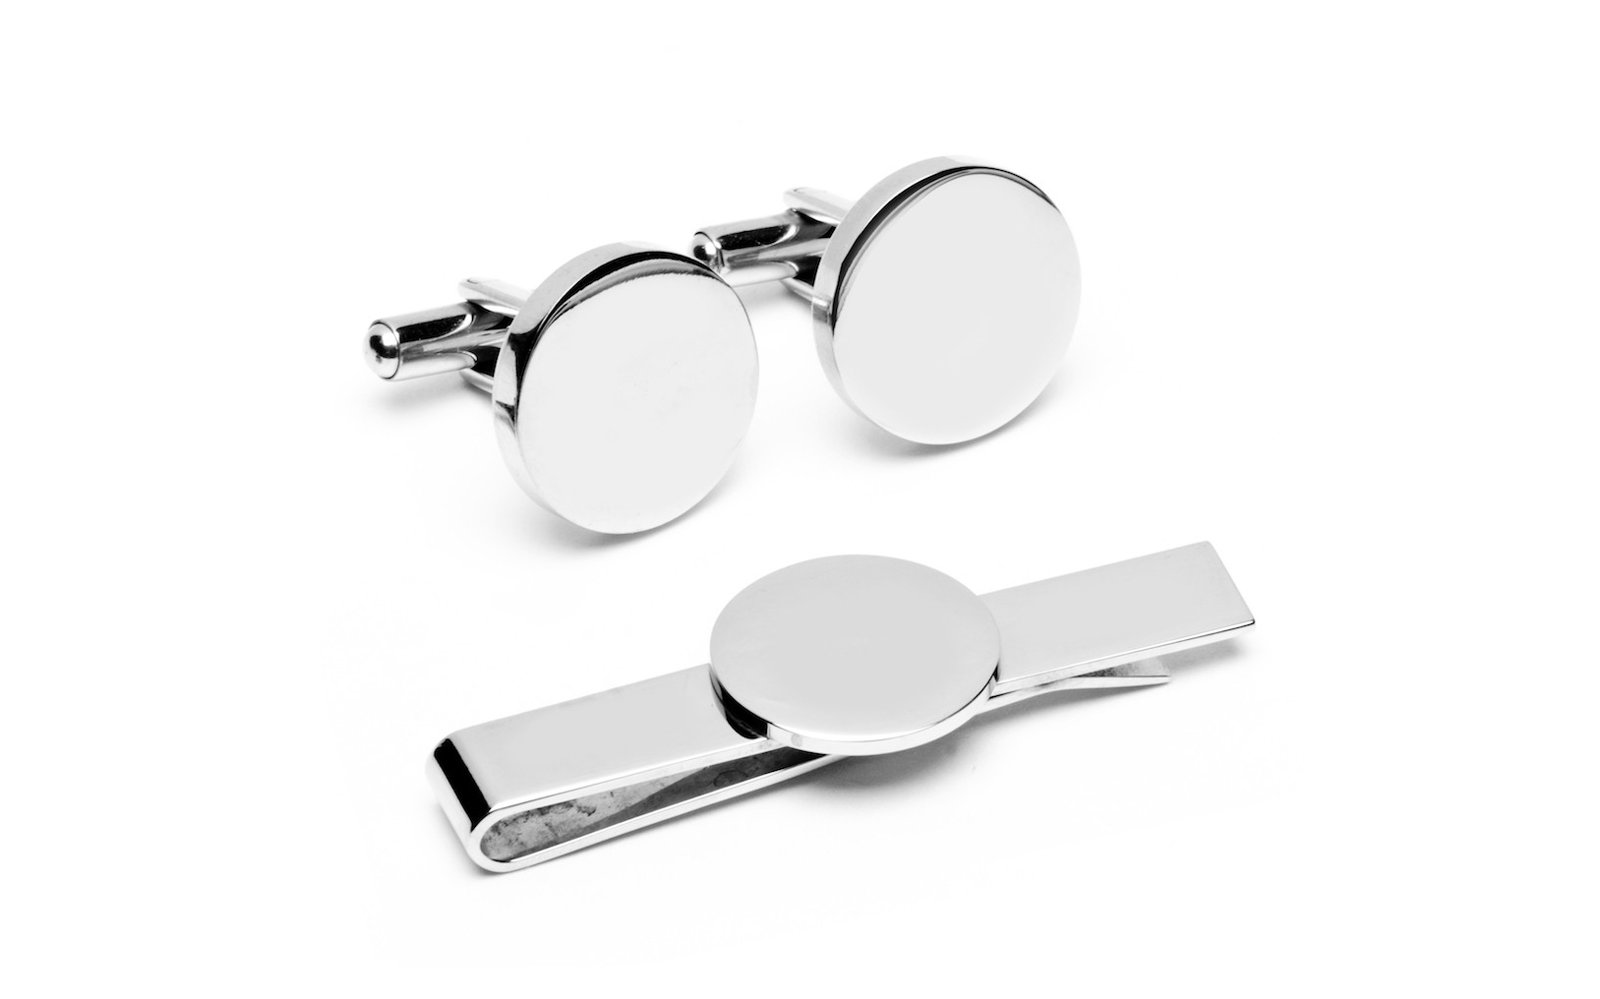 Cuff Link and Tie Clip